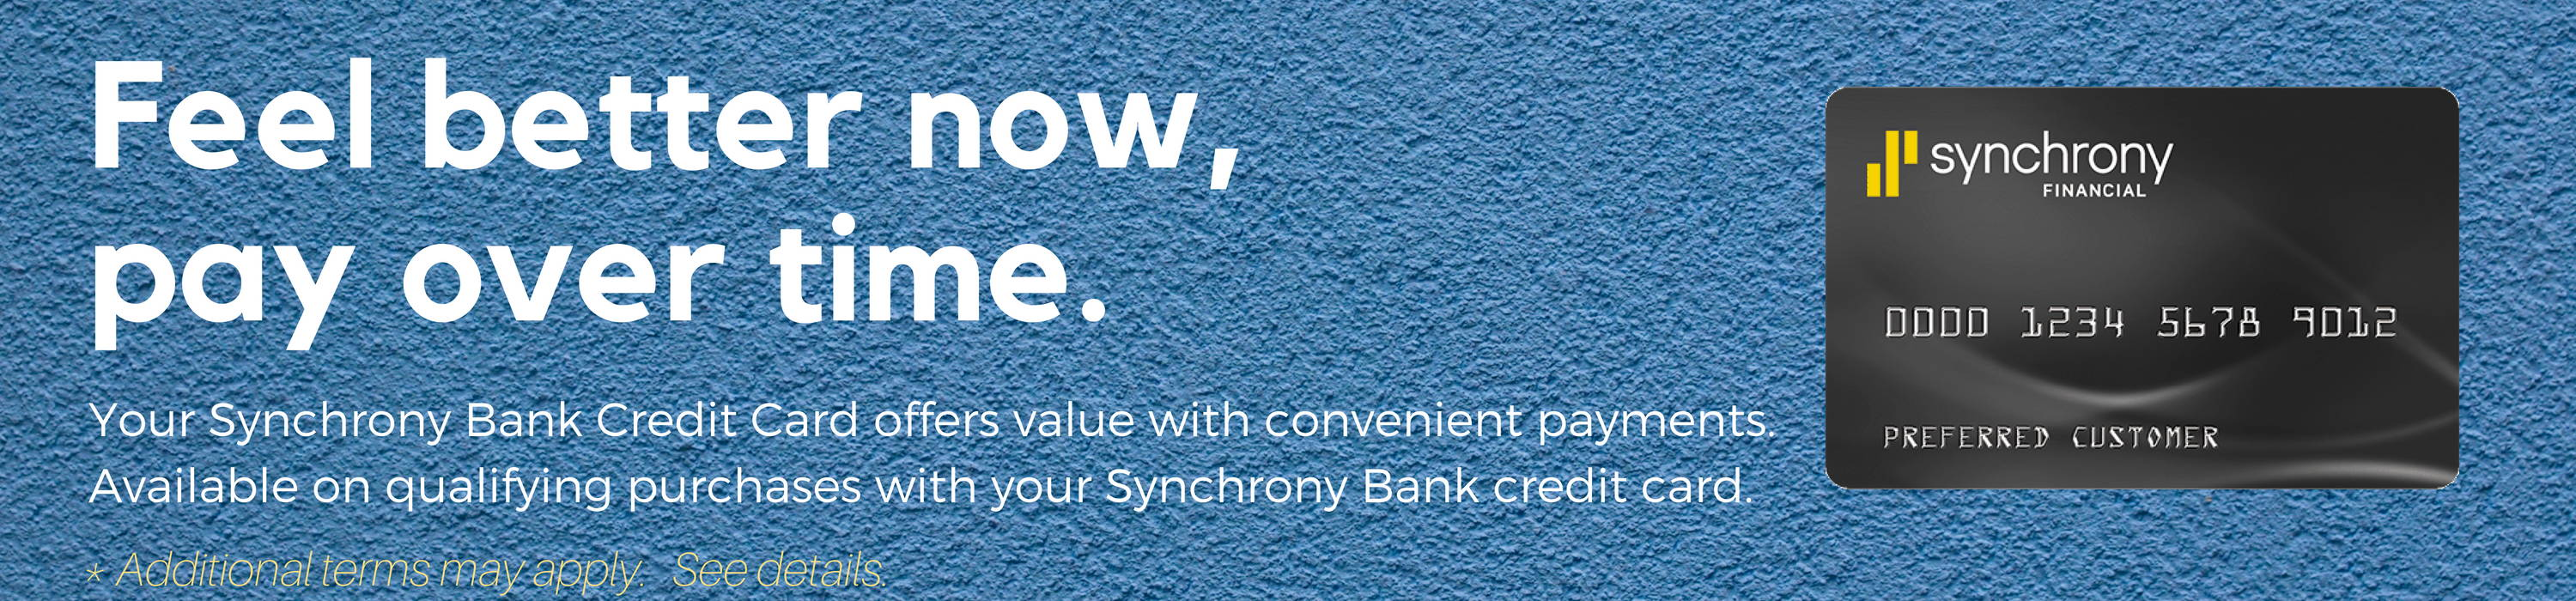 Pay over time with Synchrony Financing